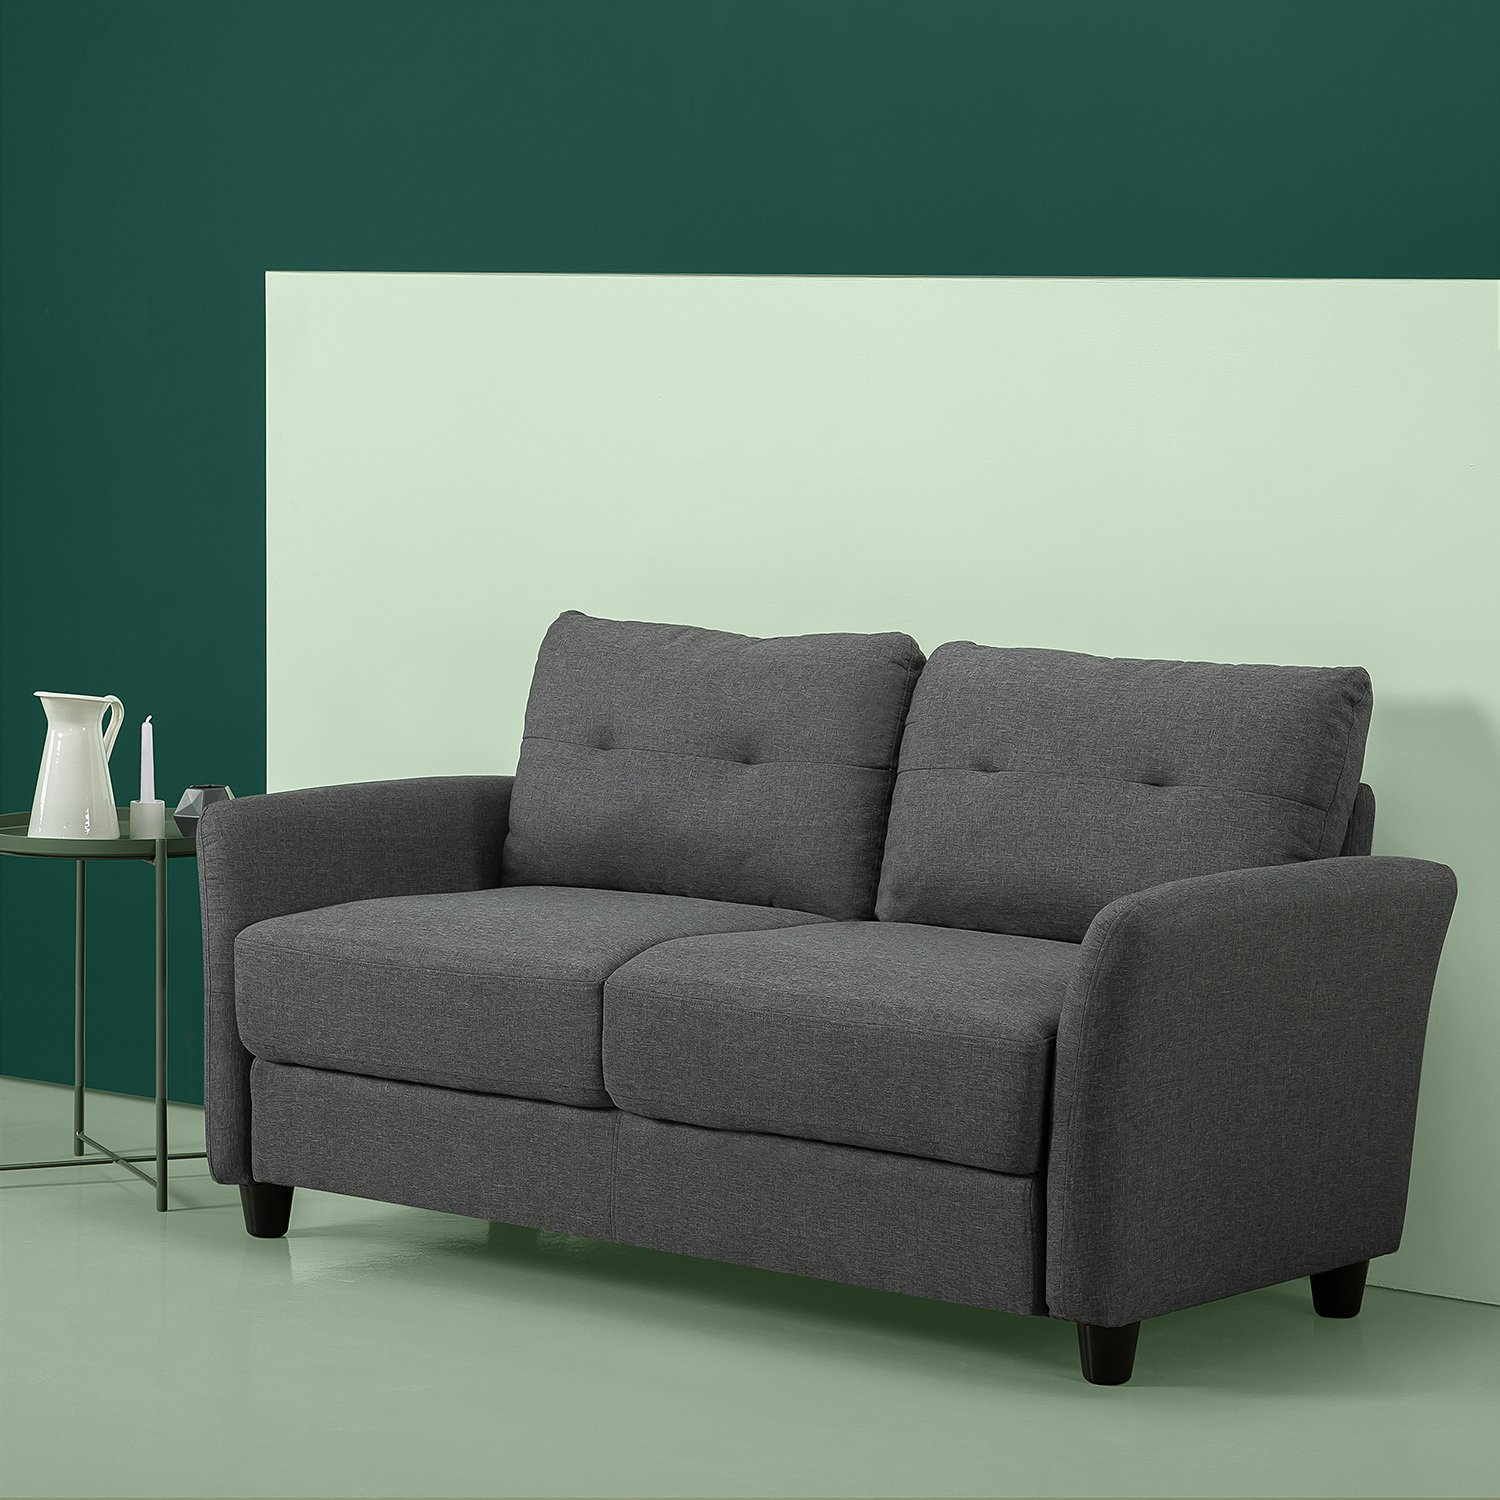 Zinus Ricardo Contemporary Upholstered 62.2 Inch Couch